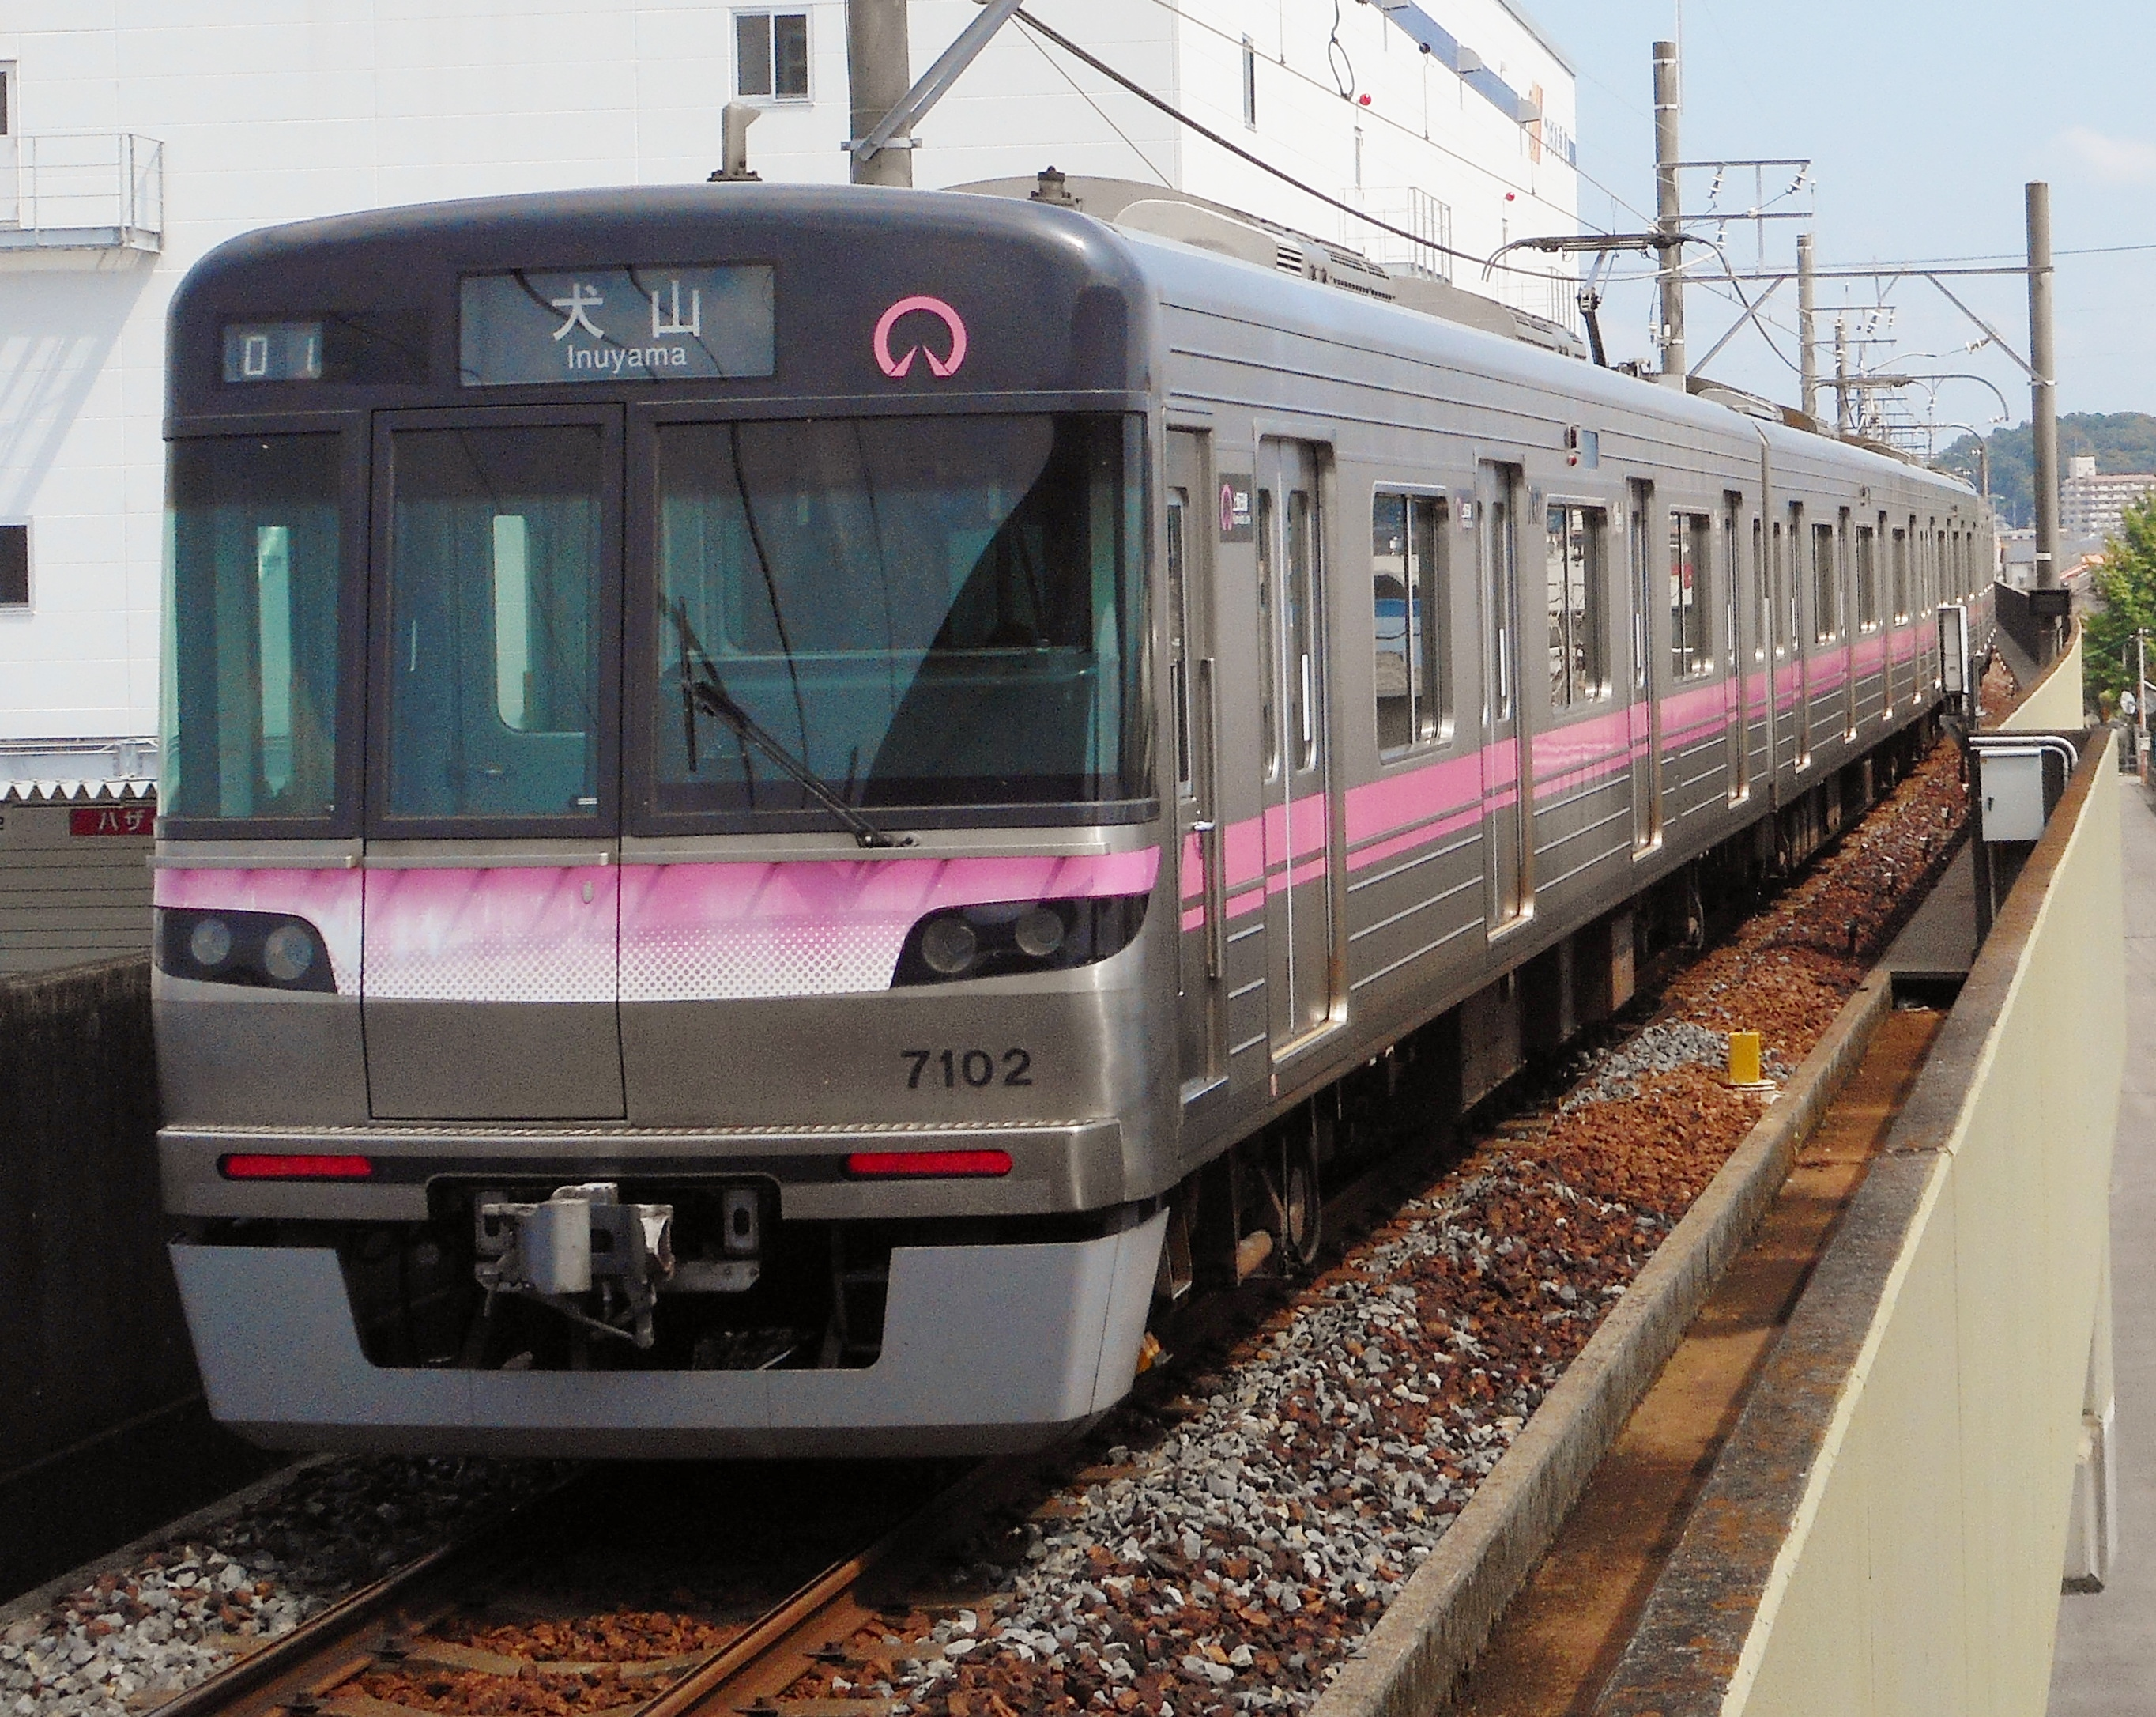 https://upload.wikimedia.org/wikipedia/commons/1/16/Nagoya_Subway_KamiiidaLine_Series_7000_7102F.jpg